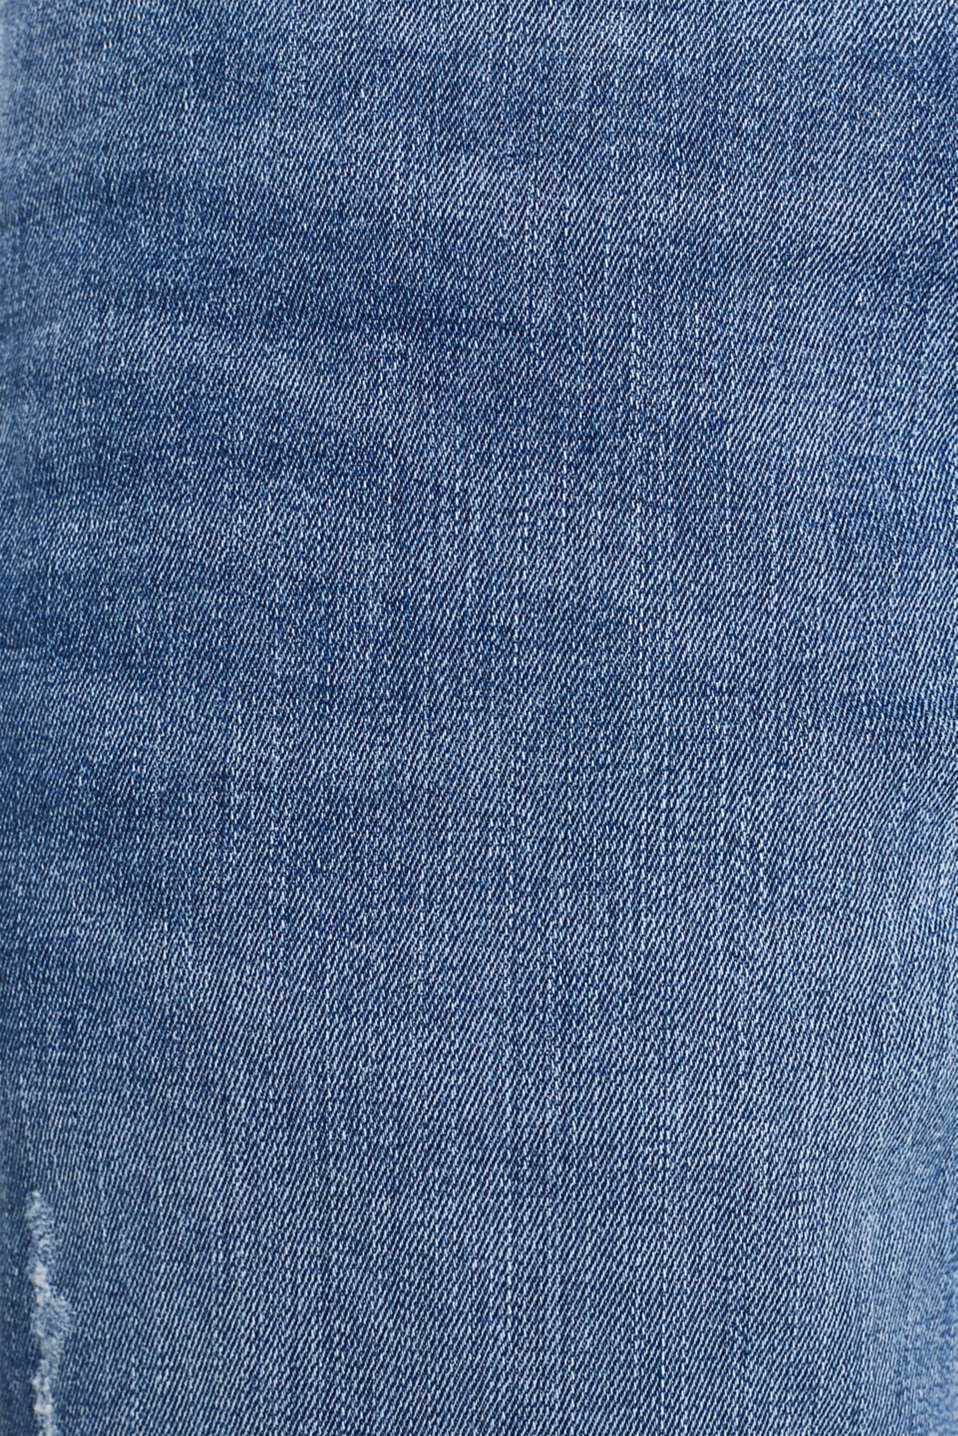 Super stretchy jeans with washed-out effect, BLUE LIGHT WASH, detail image number 4